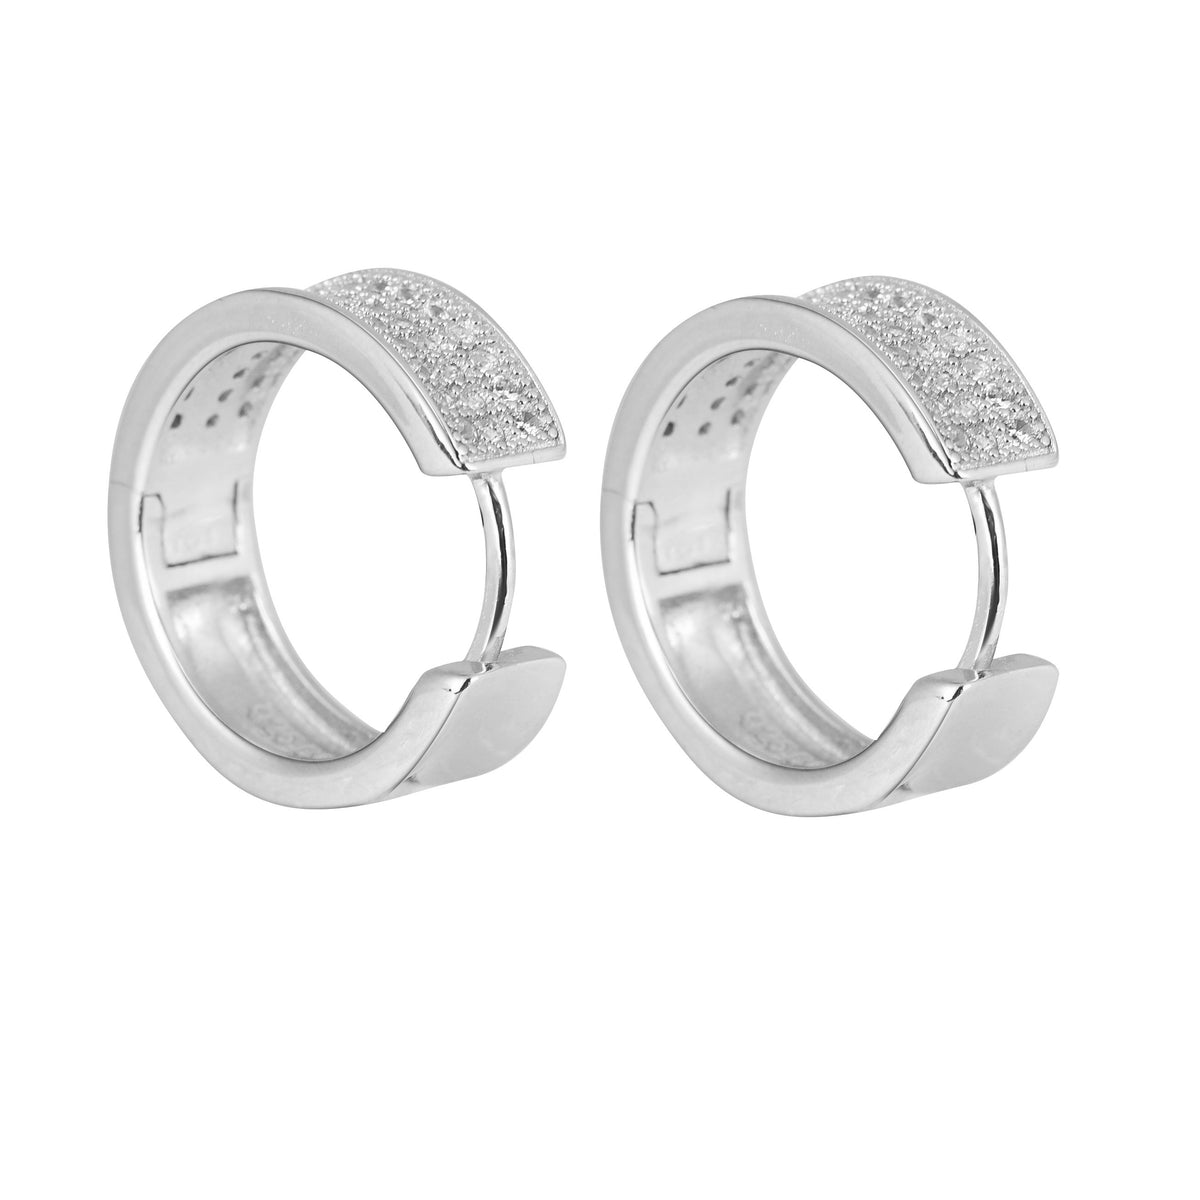 .925 Sterling Silver Hoop 3-Row Earrings